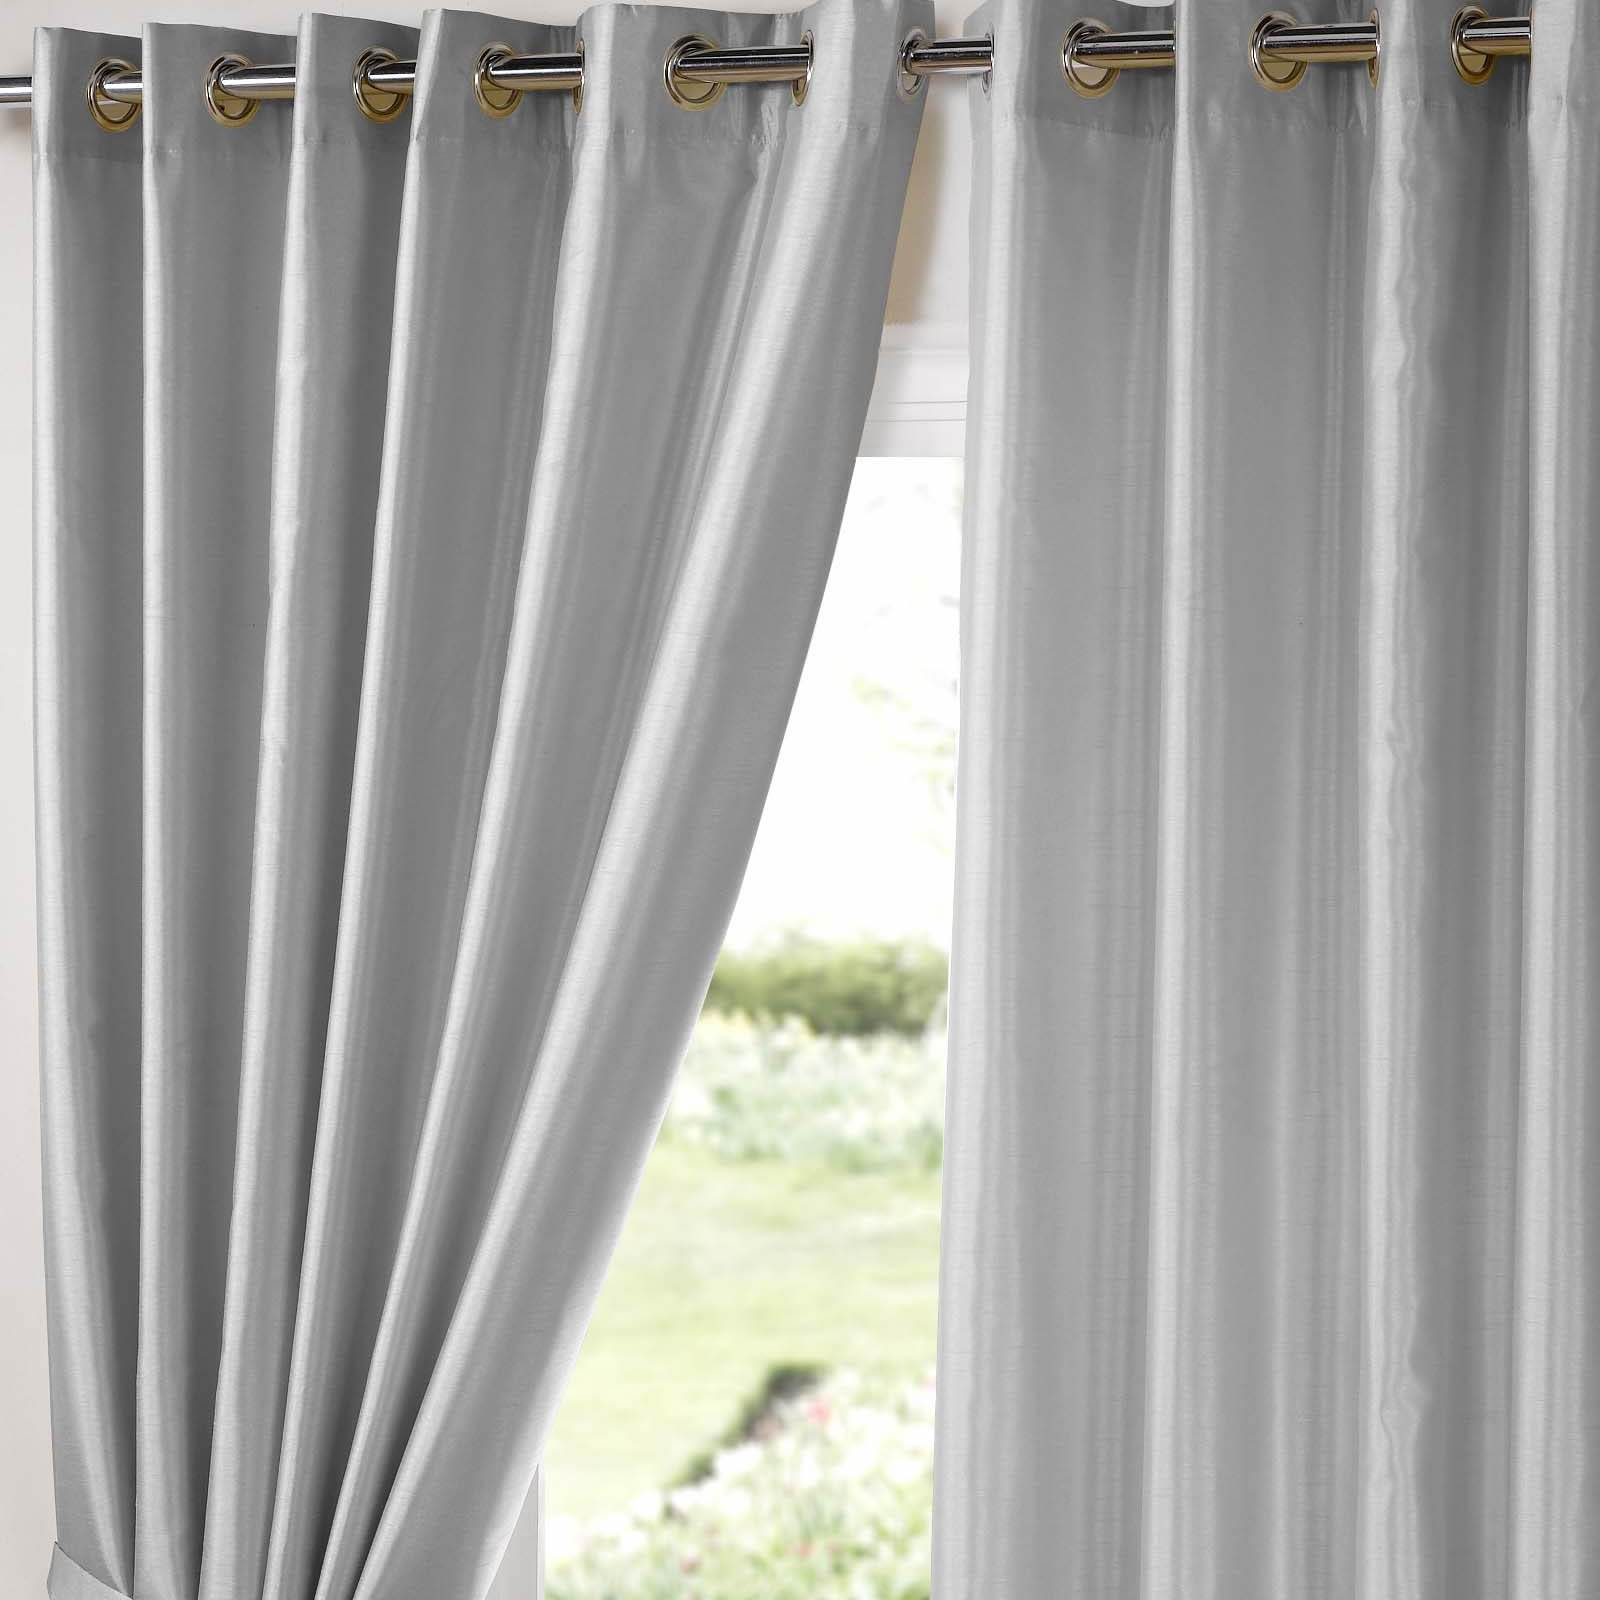 Fully Lined Eyelet Curtains Ring Top Pair Faux Silk Black